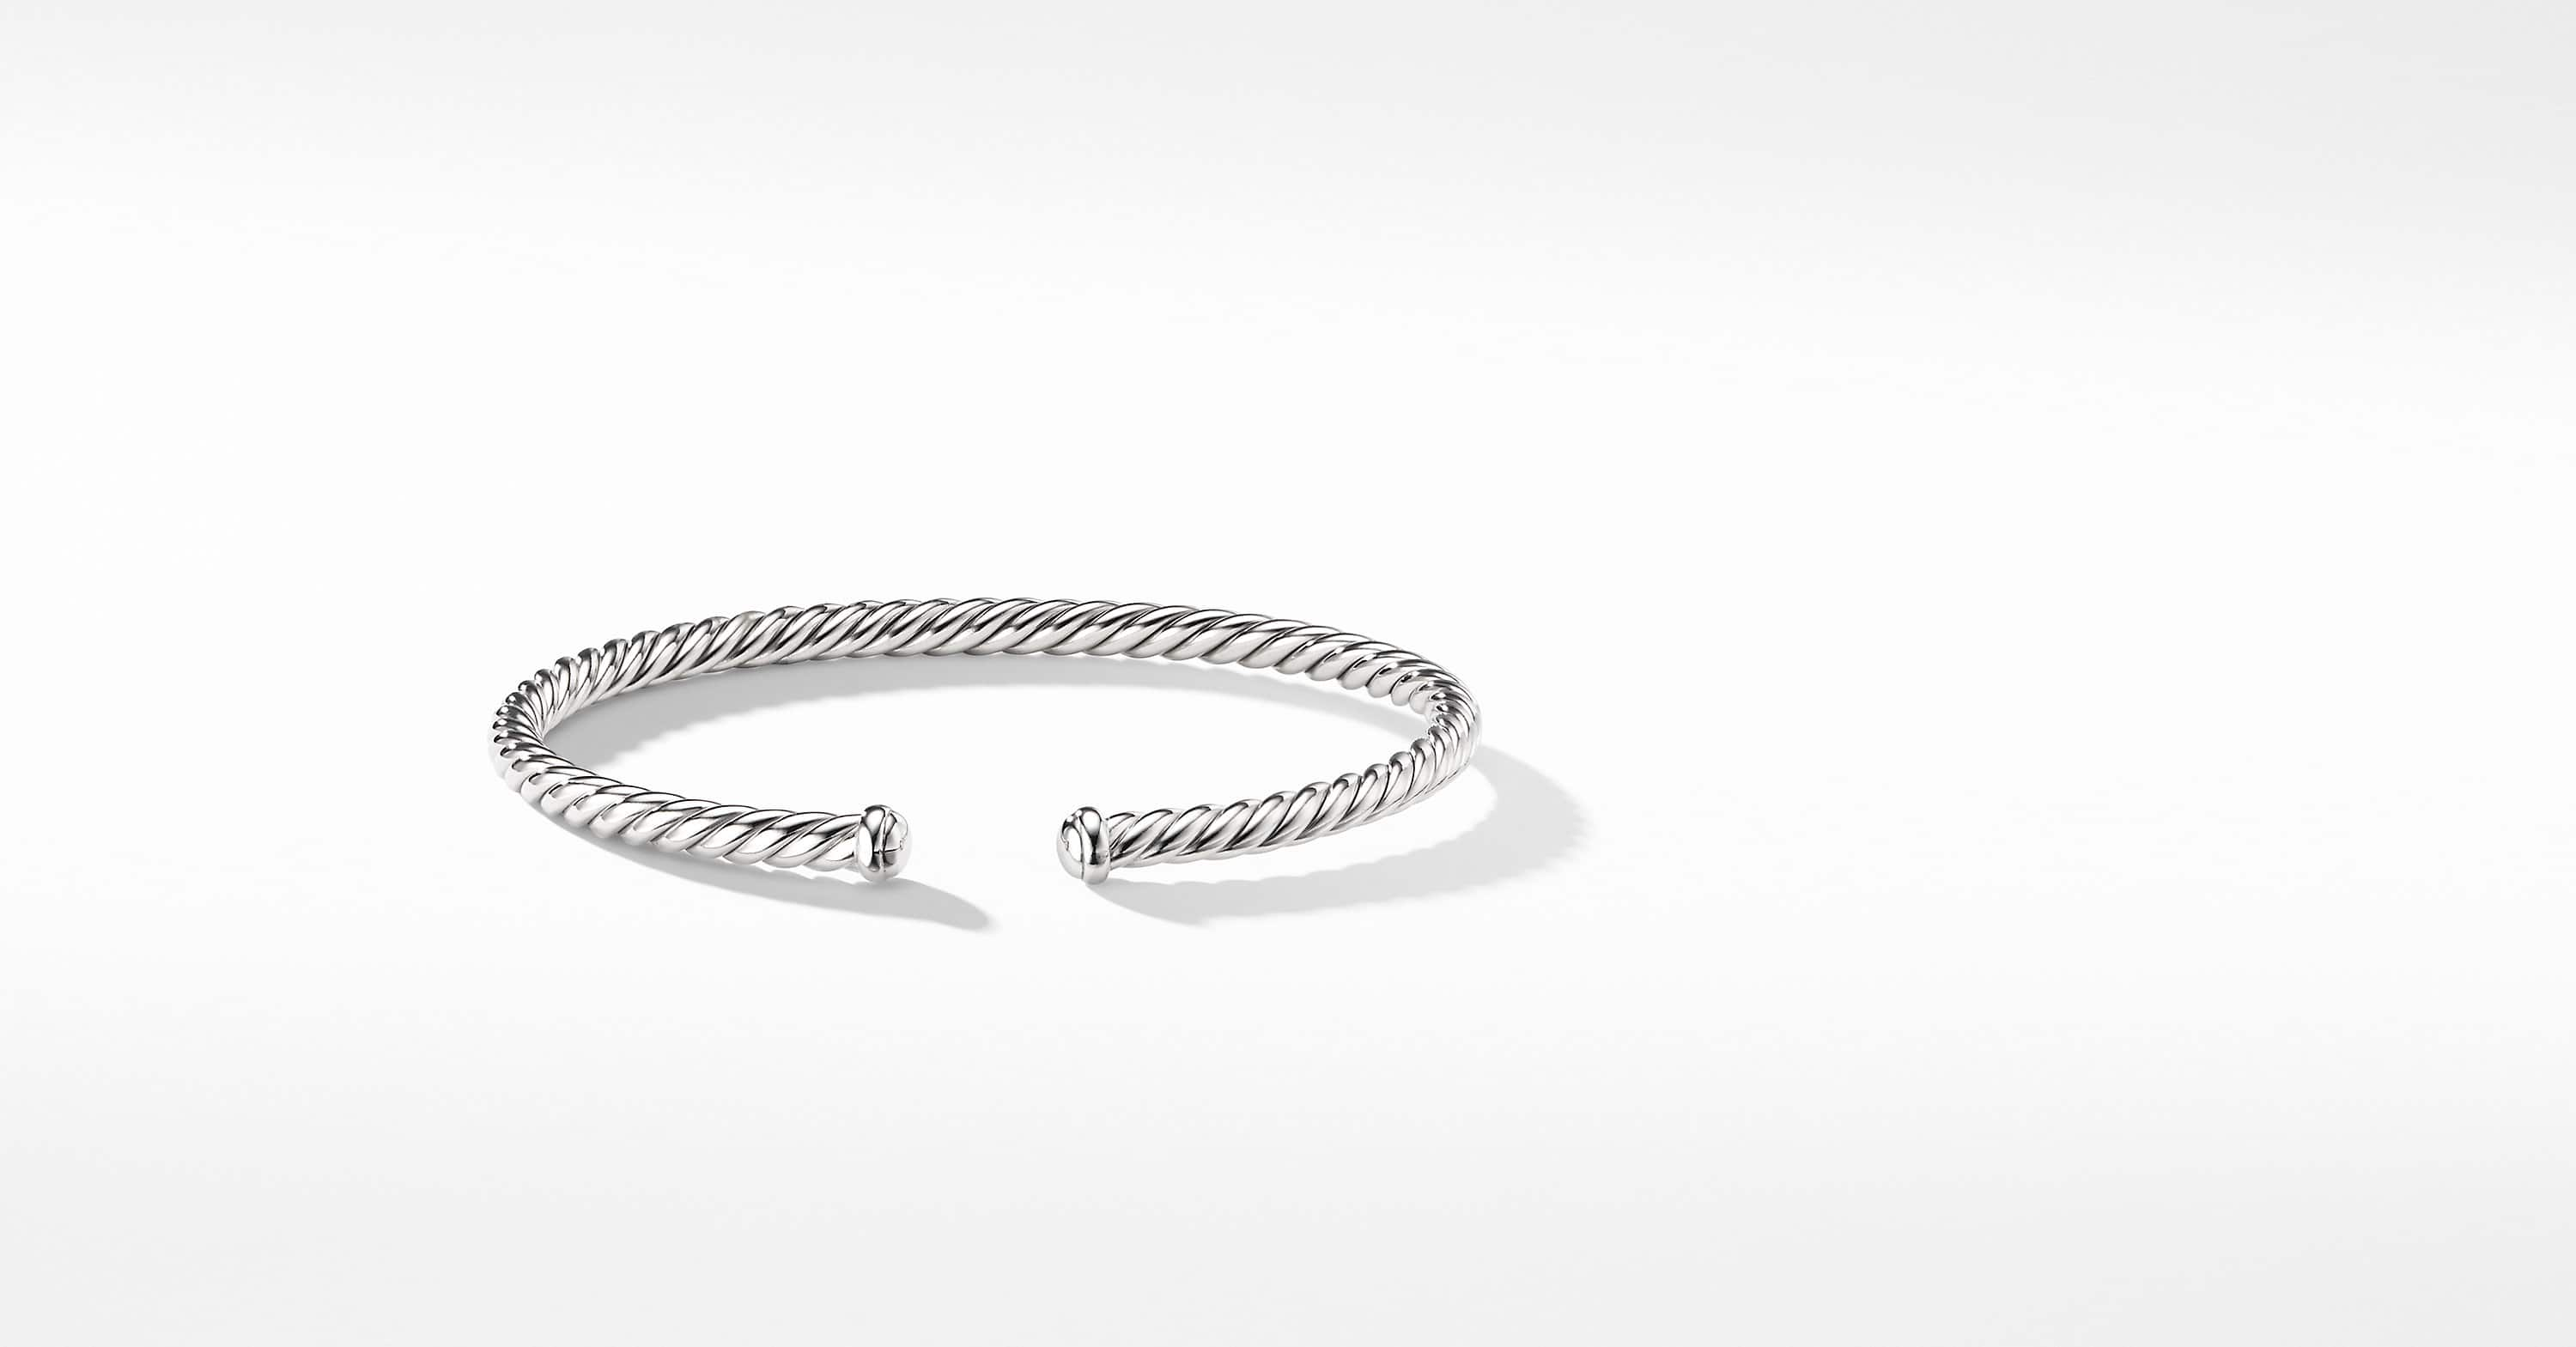 Bracelet Cable Spira en or blanc 18 carats, 4 mm